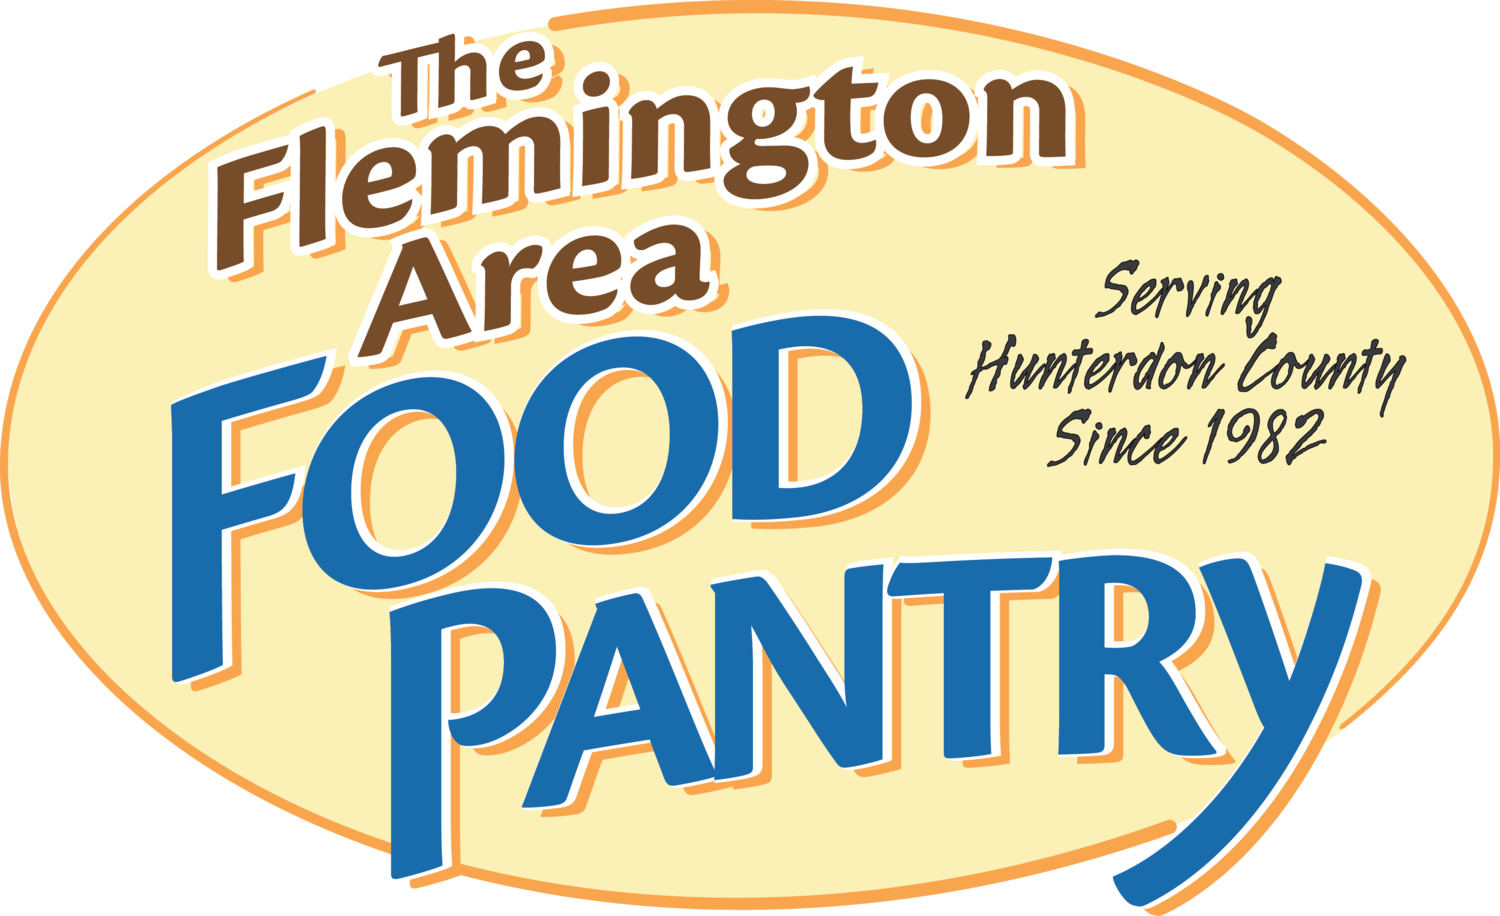 Flemington Food Pantry